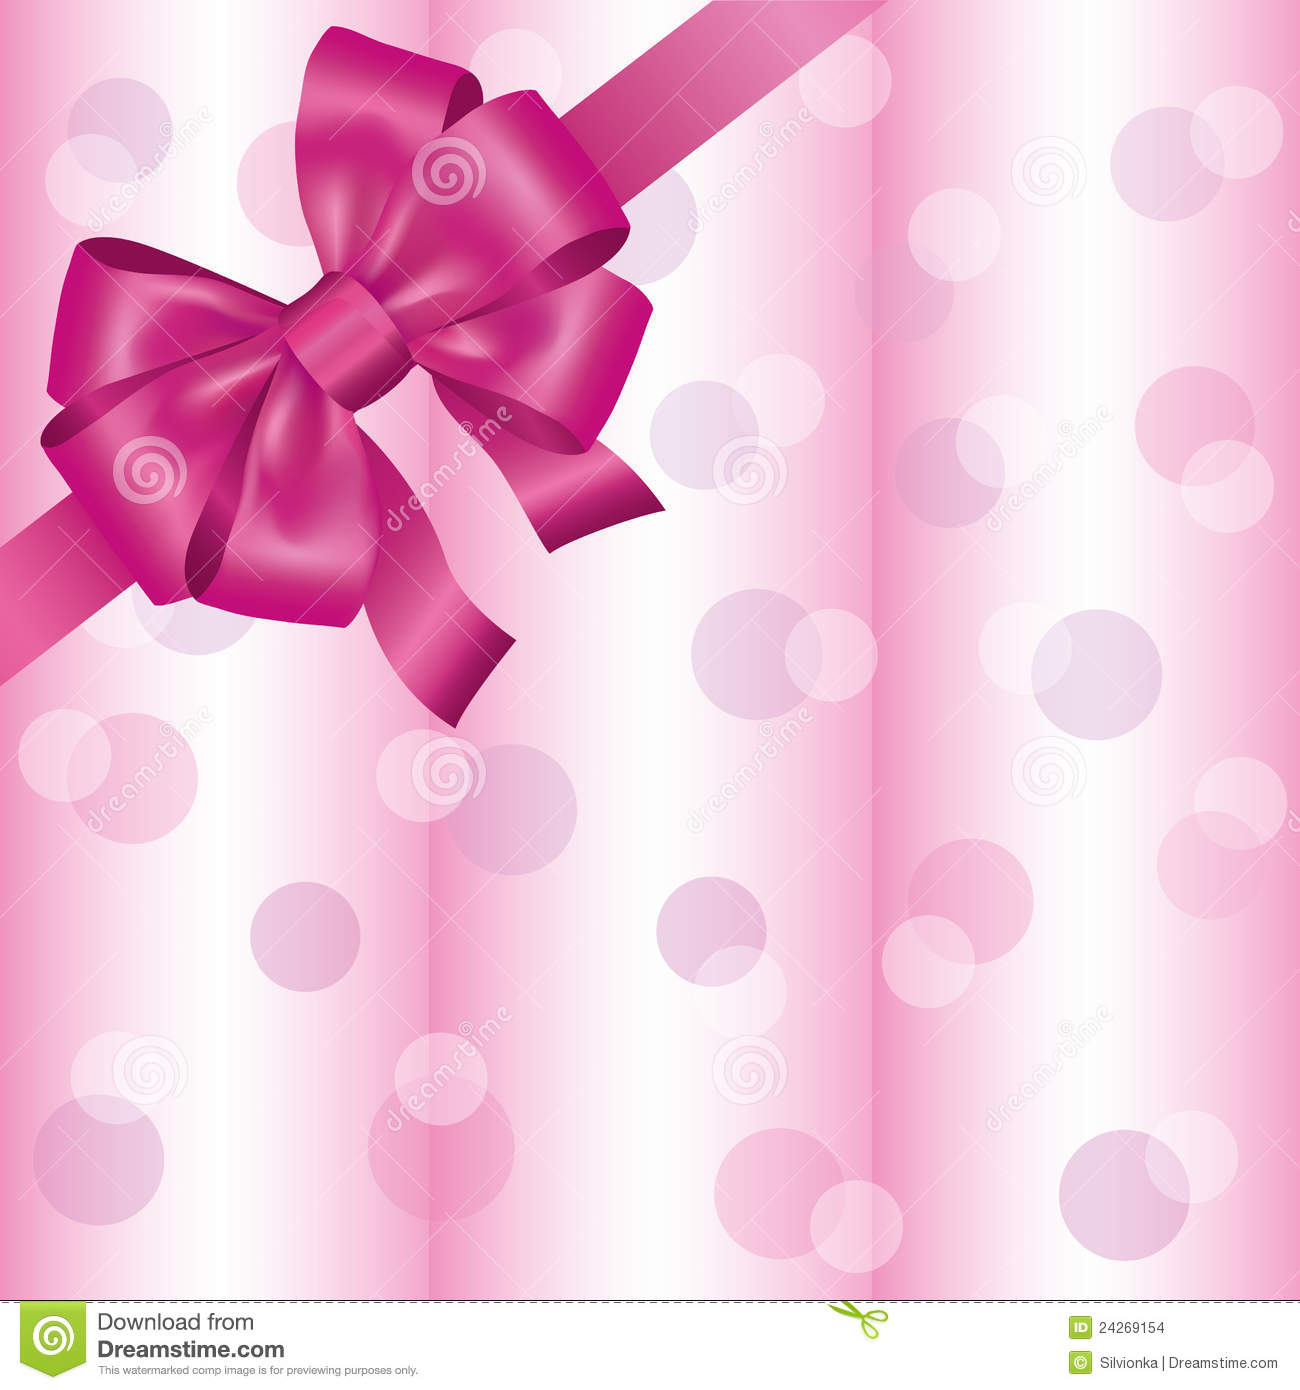 Greeting or invitation card with ribbon and bow, light pink background ...